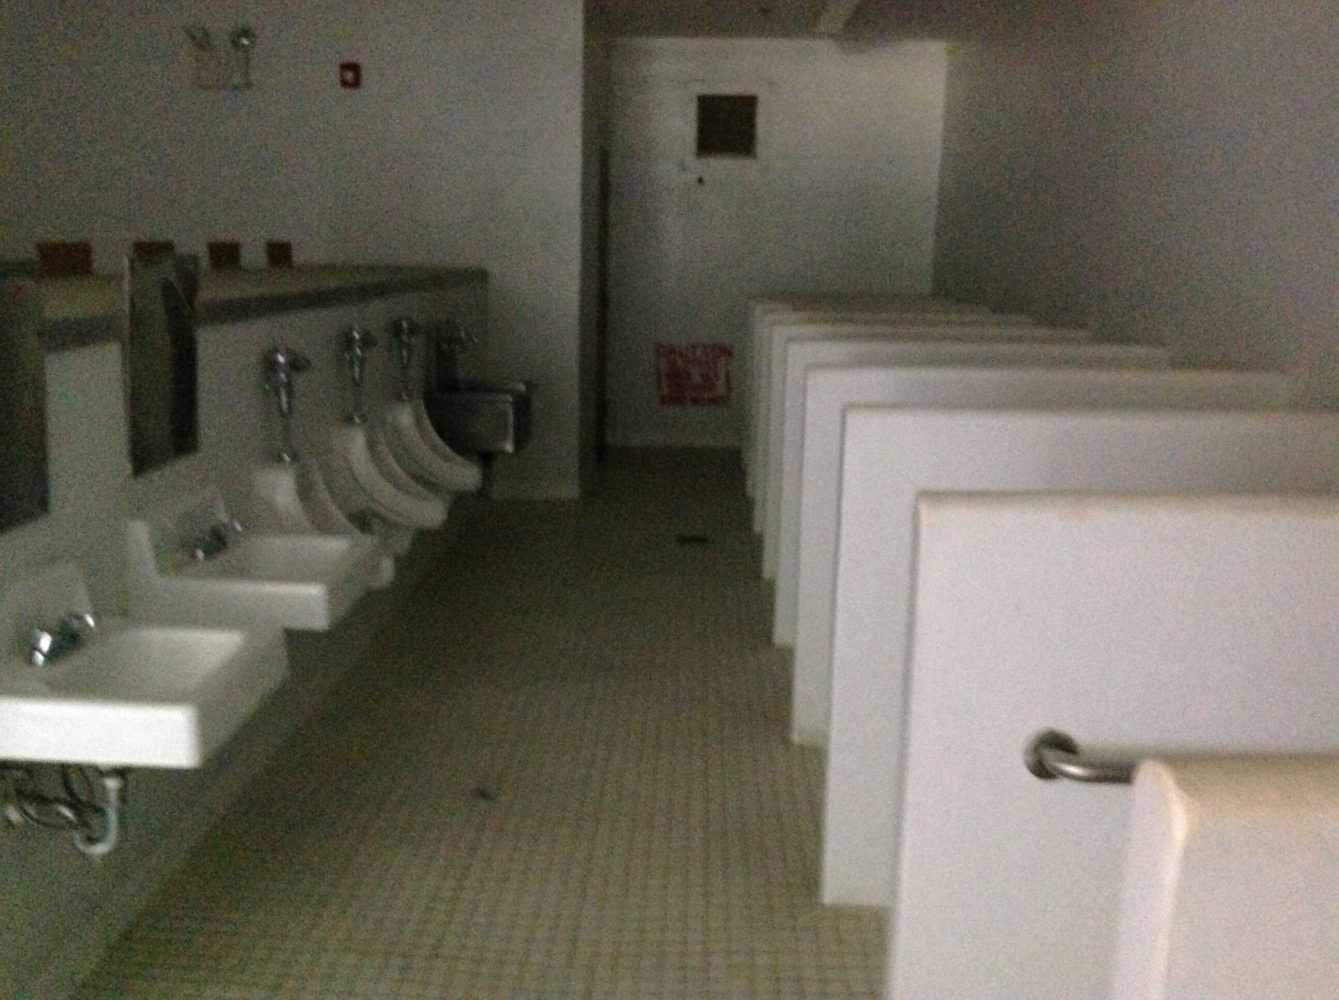 The restrooms will be shared dormitory style as they did when the facility served as a prison.